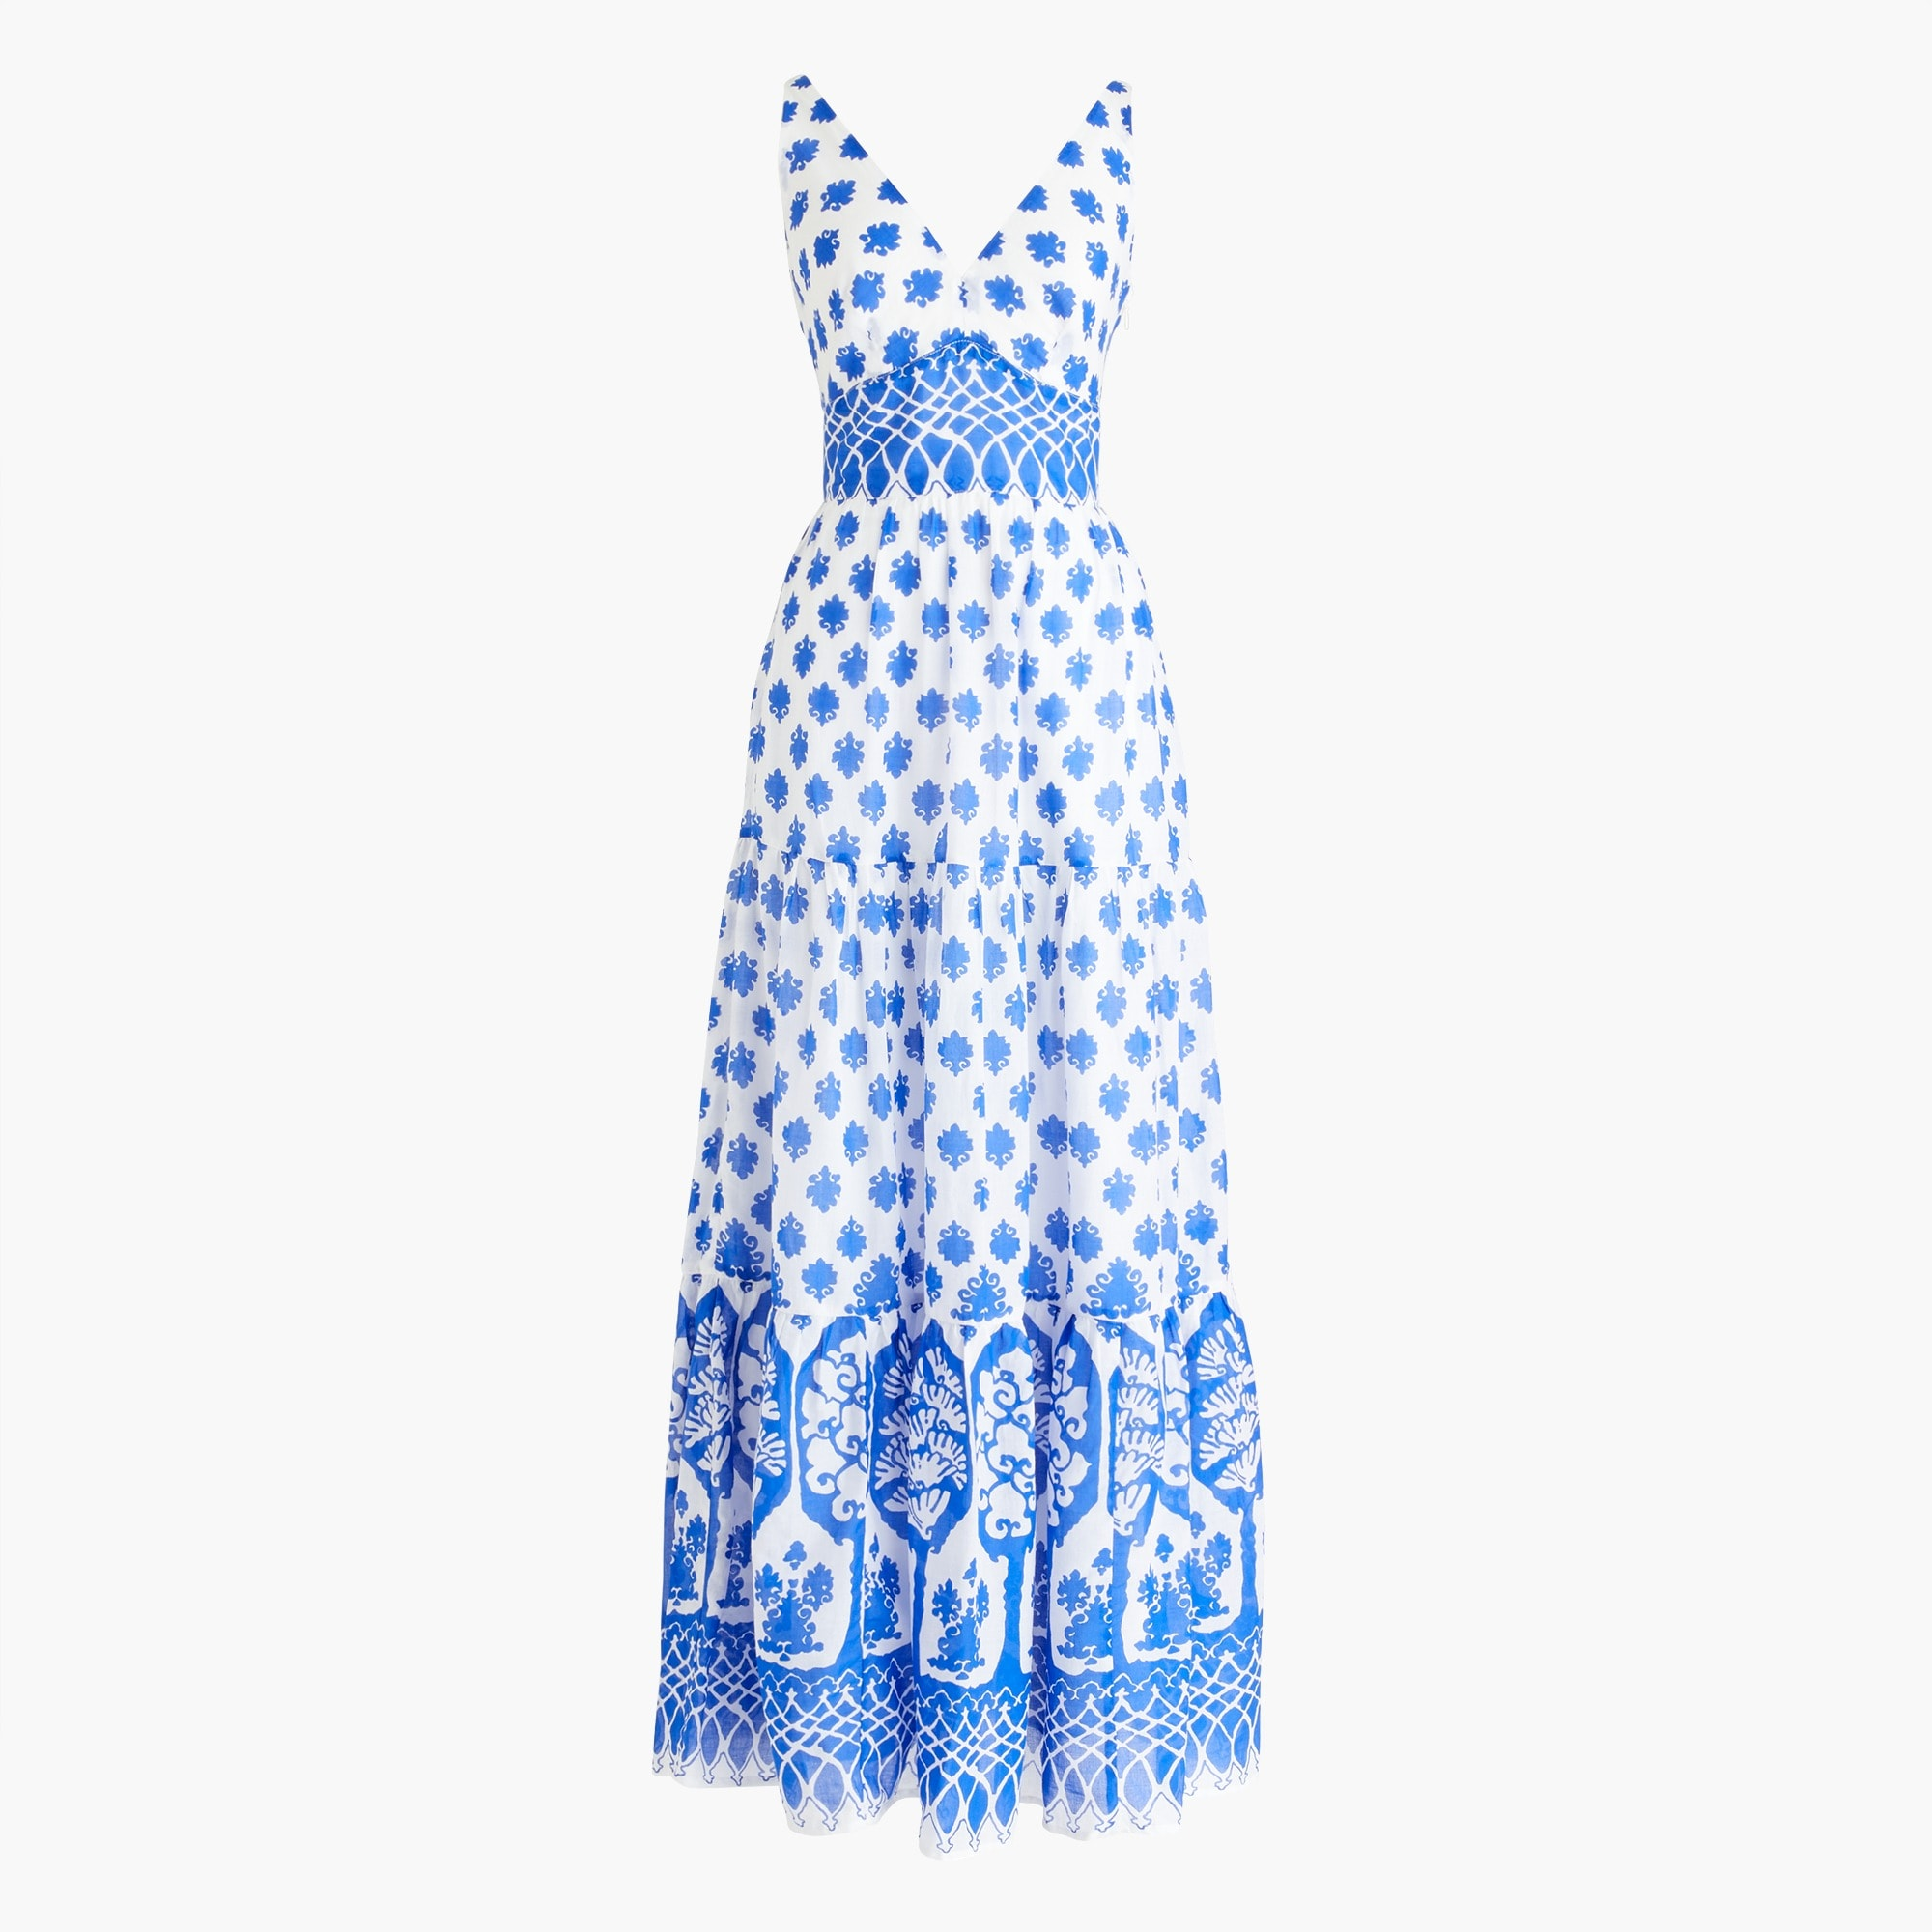 V-neck maxi dress in block print